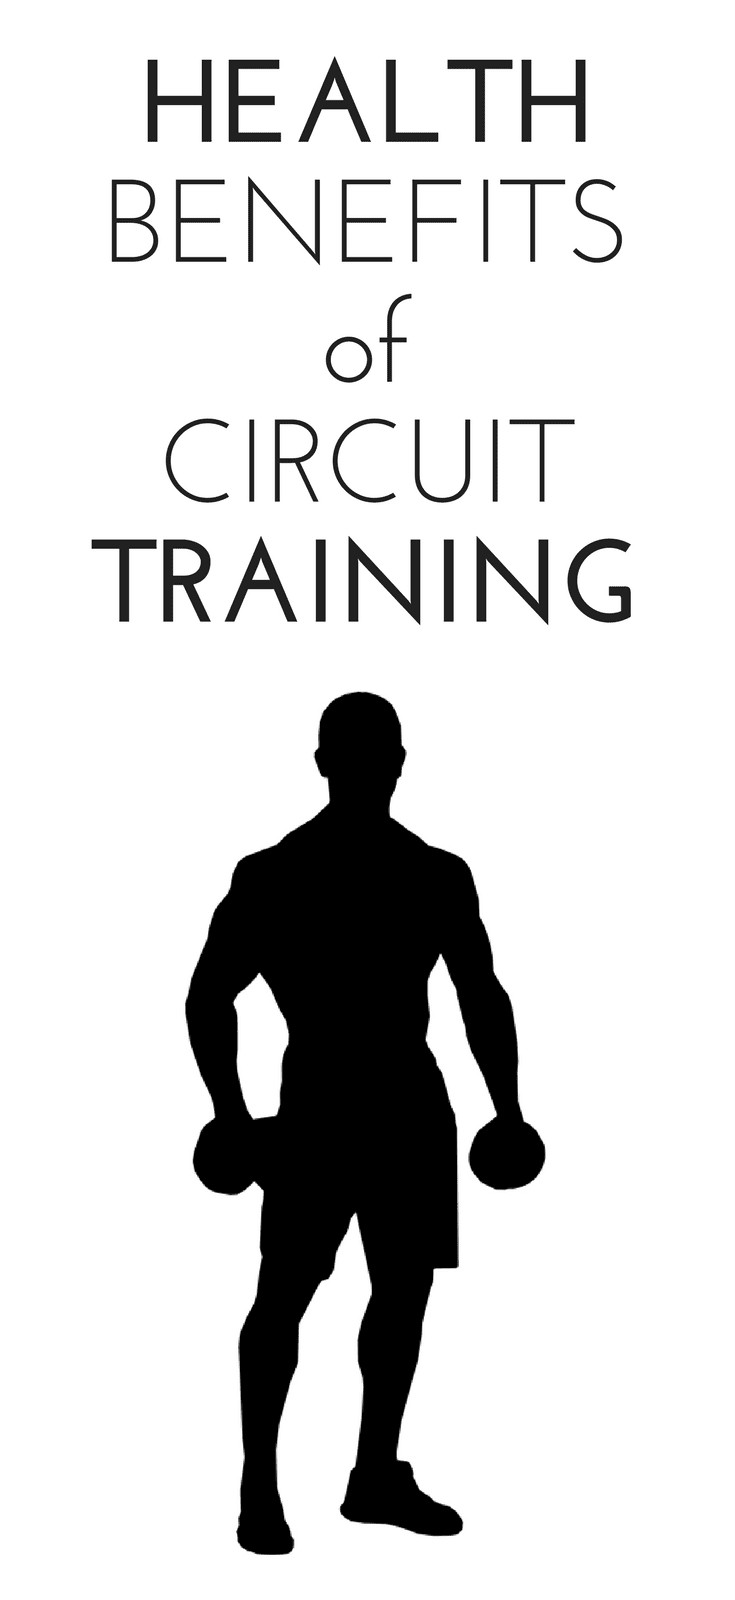 Health Benefits of Circuit Training